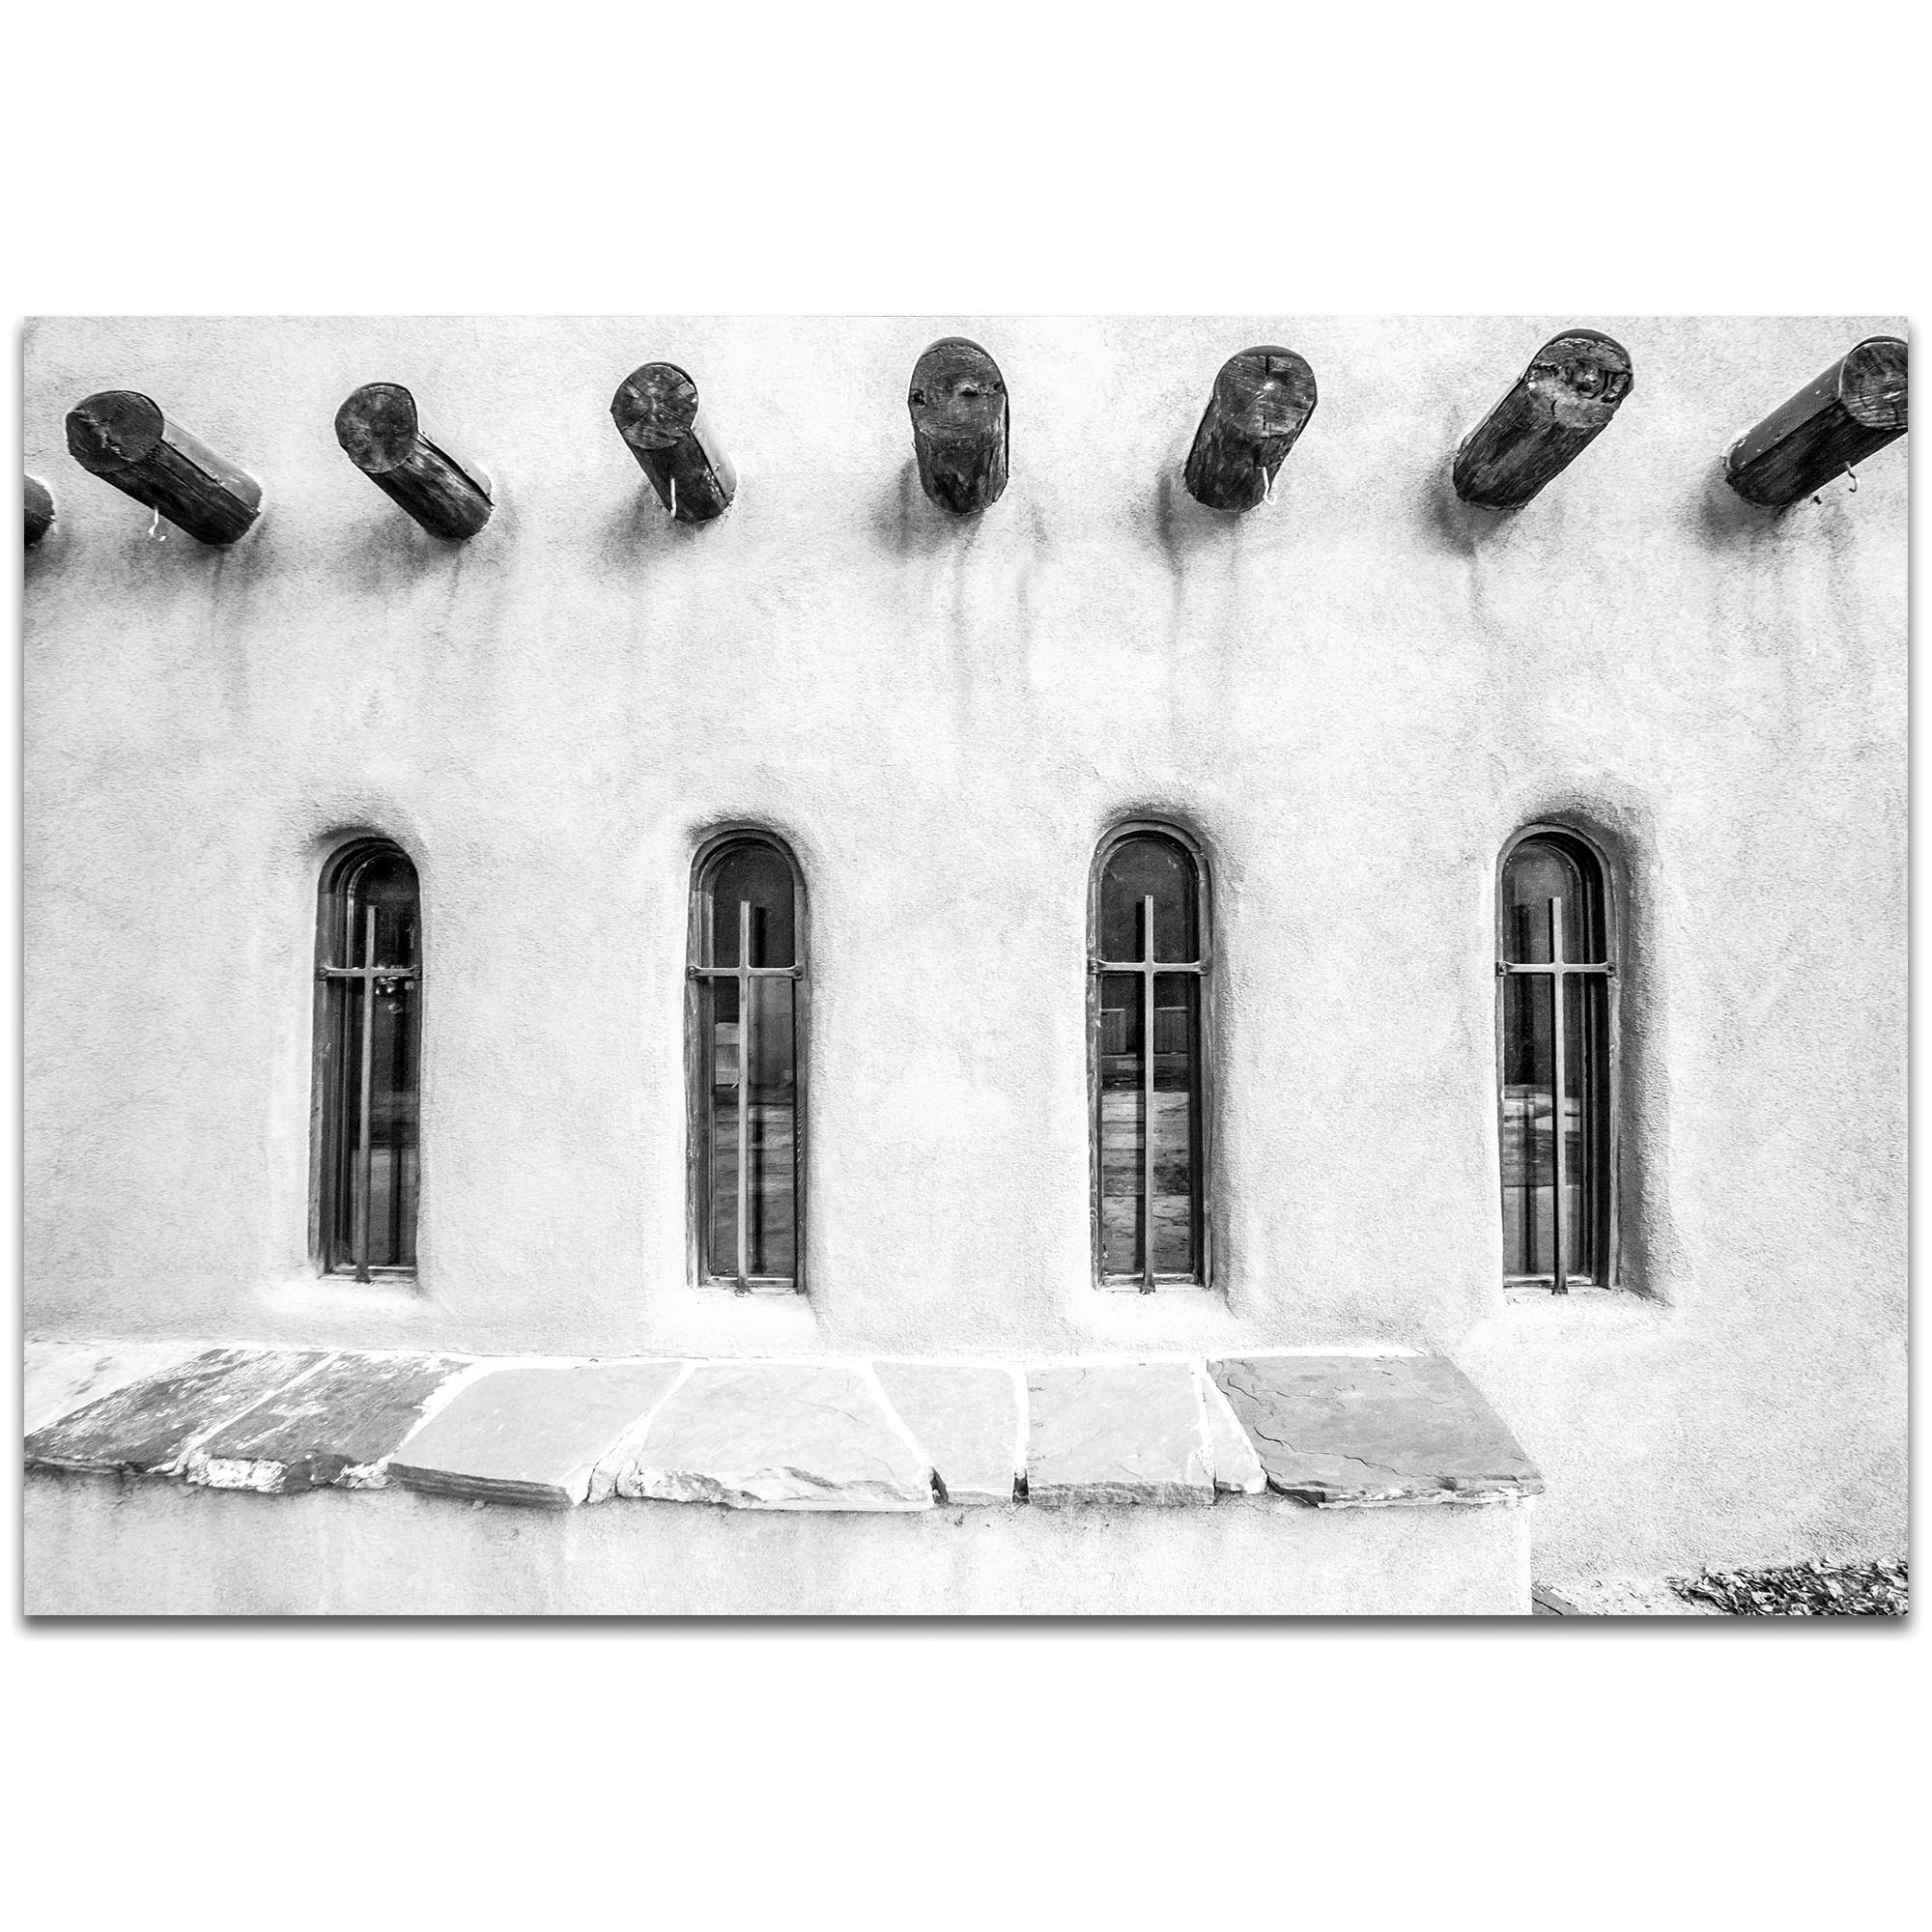 Eclectic Wall Art 'Holy Windows' - Architecture Decor on Metal or Plexiglass